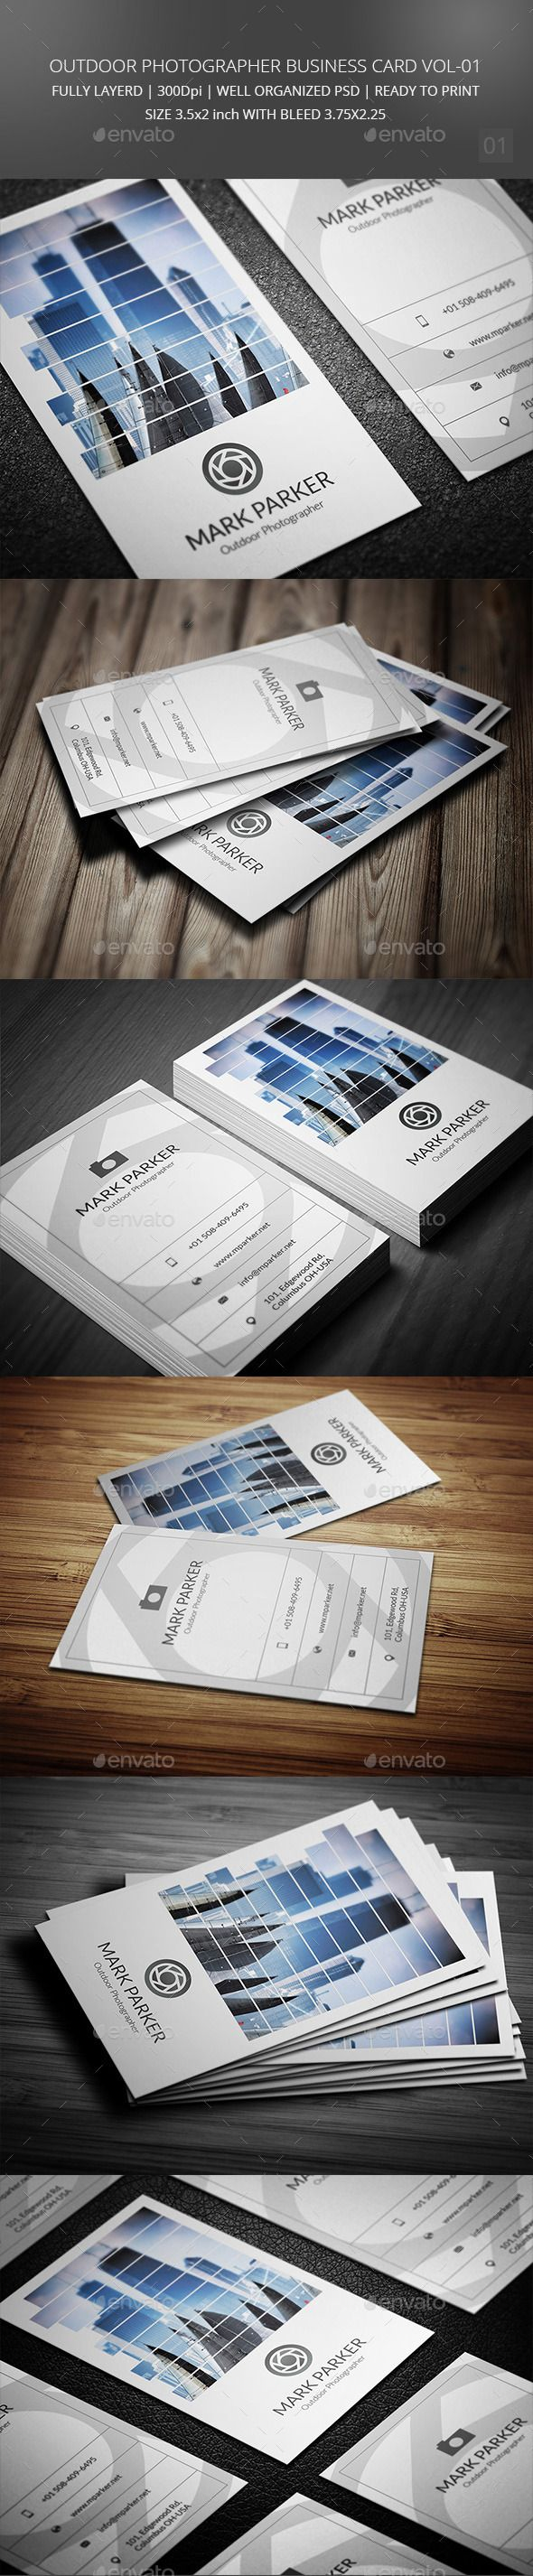 outdoor business card vol01 business card